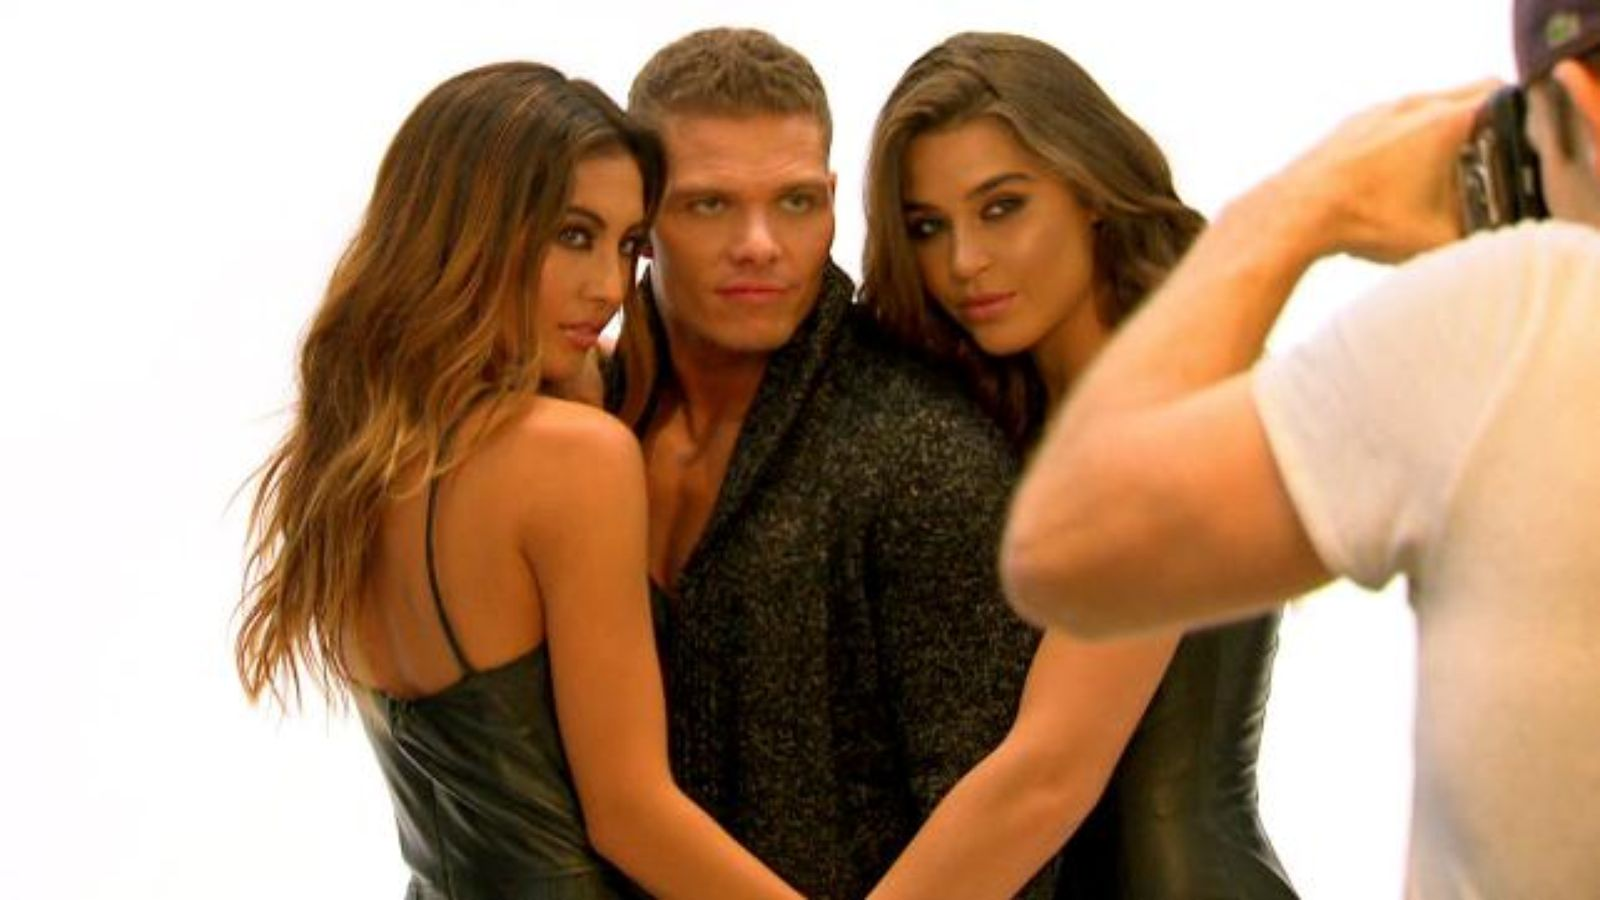 wwe tj working bulge on models for total divas 2015